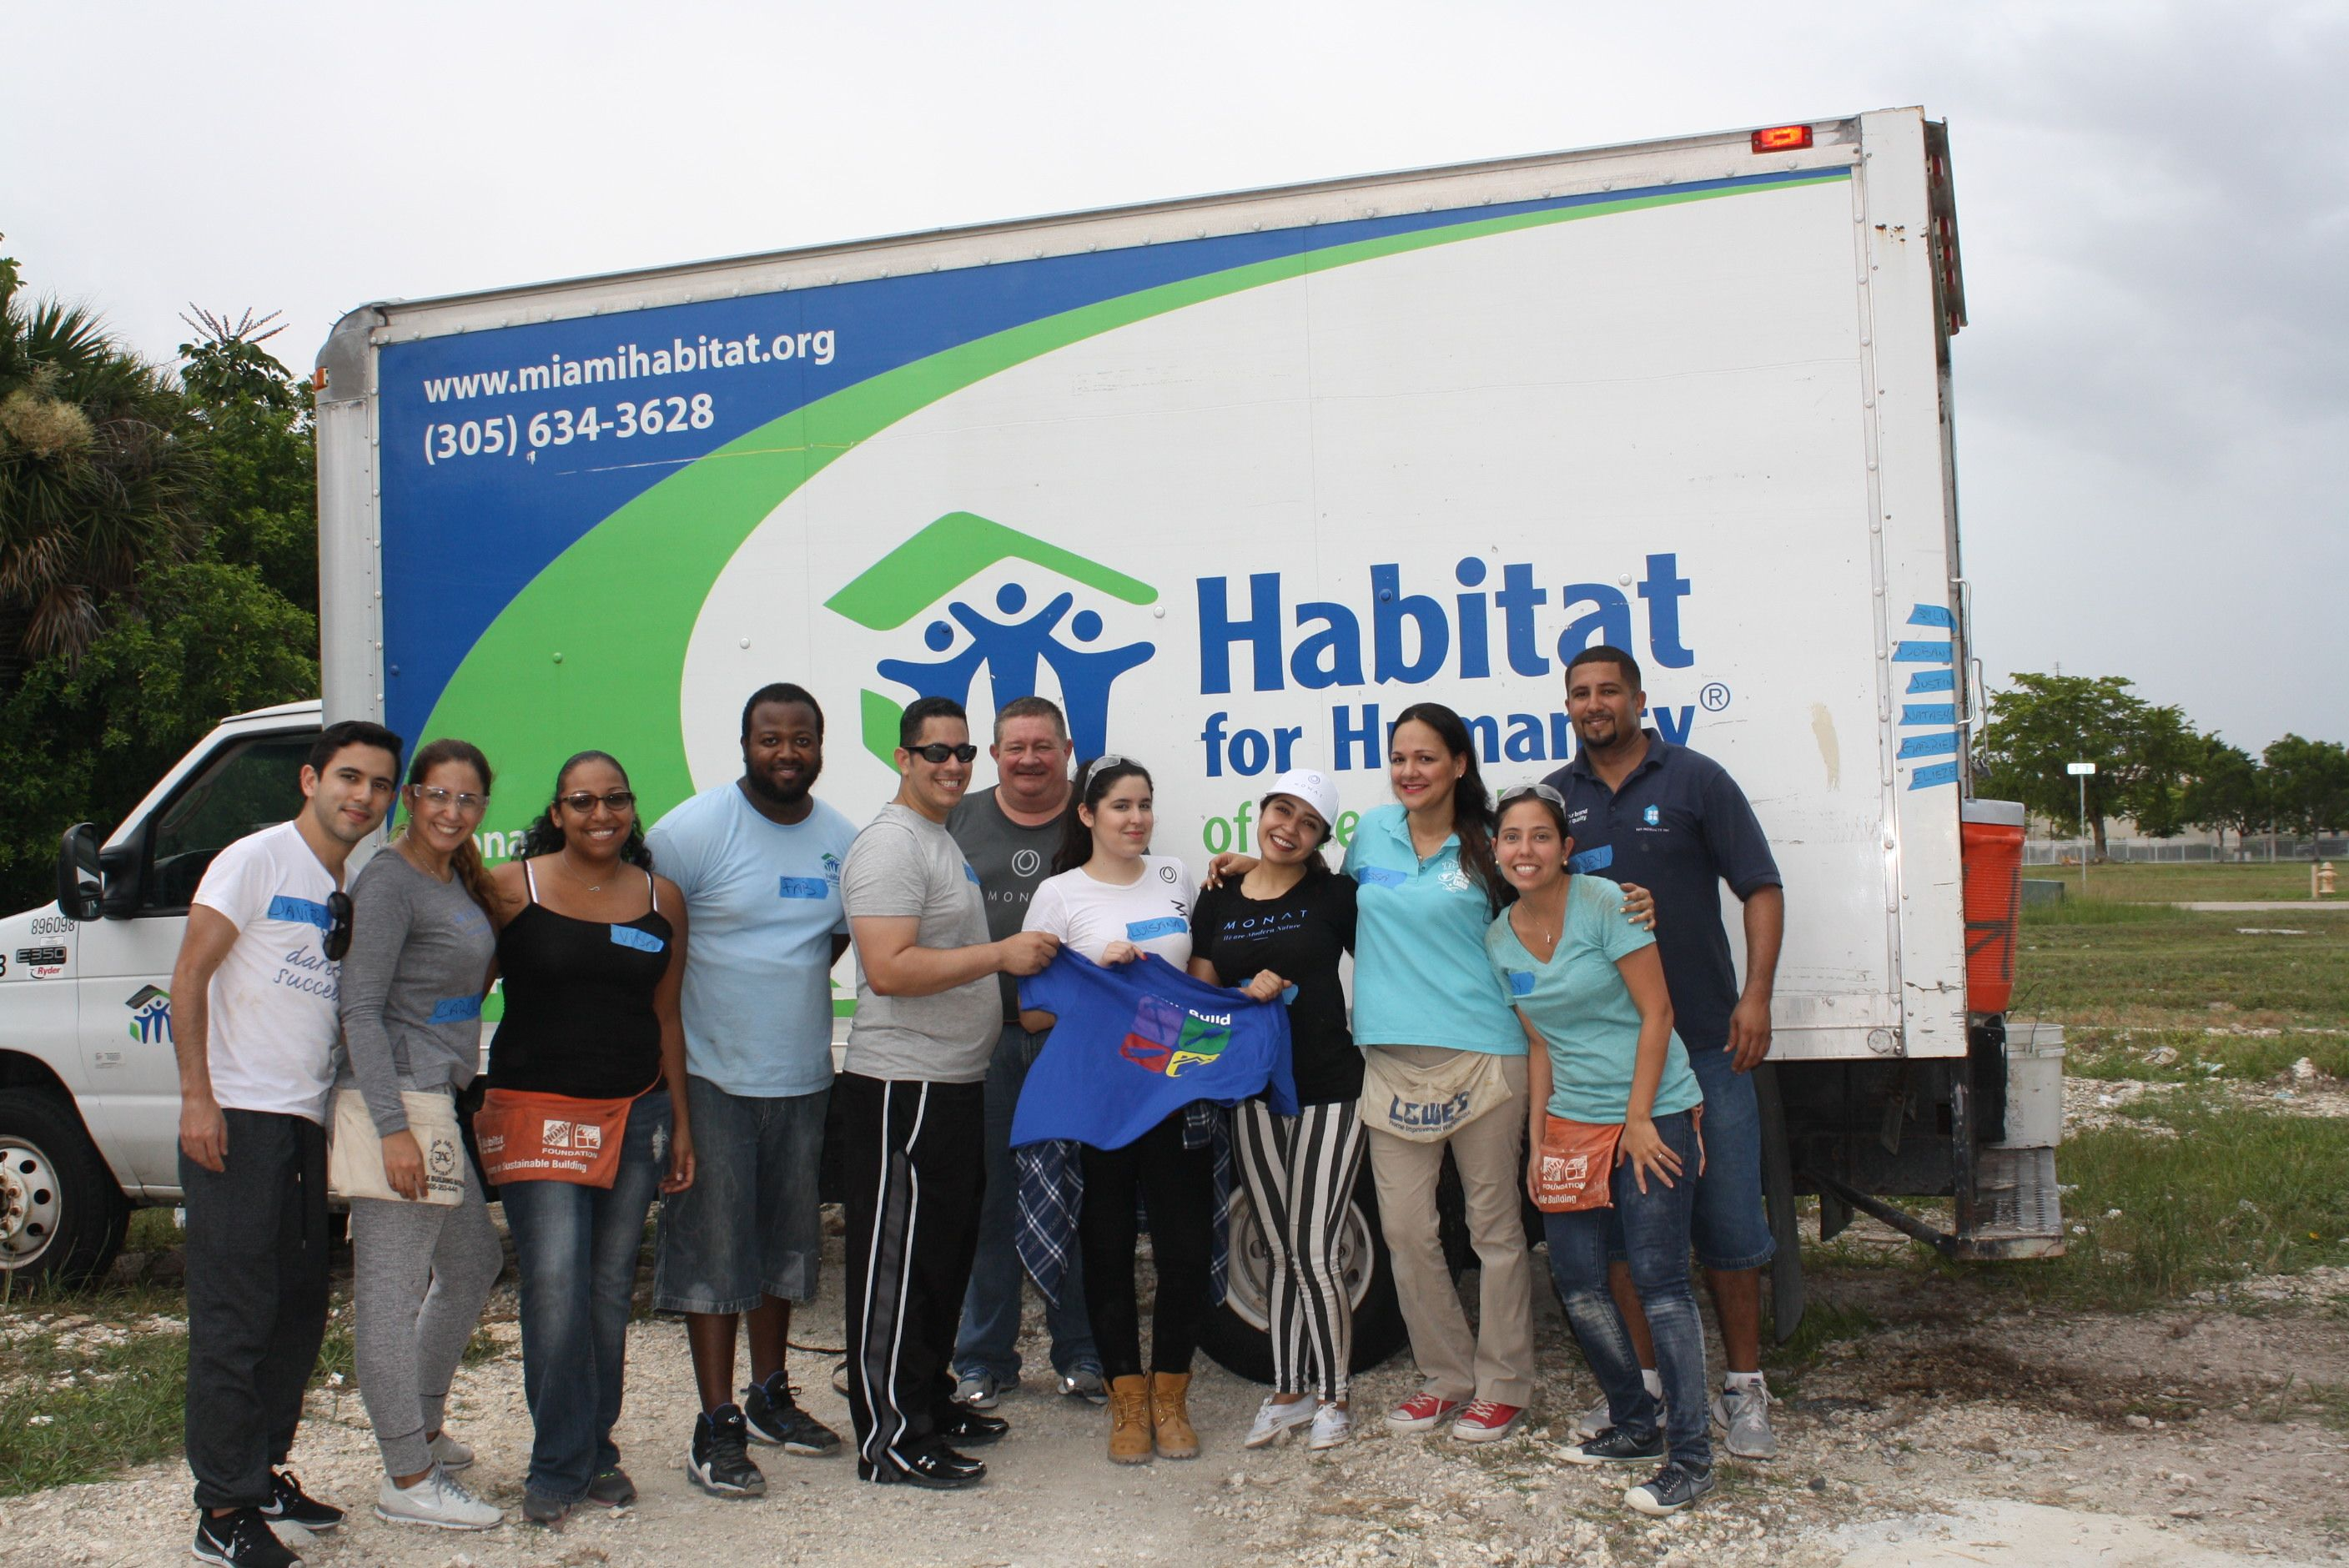 We Were So Happy To Volunteer Alongside Our Habitat For